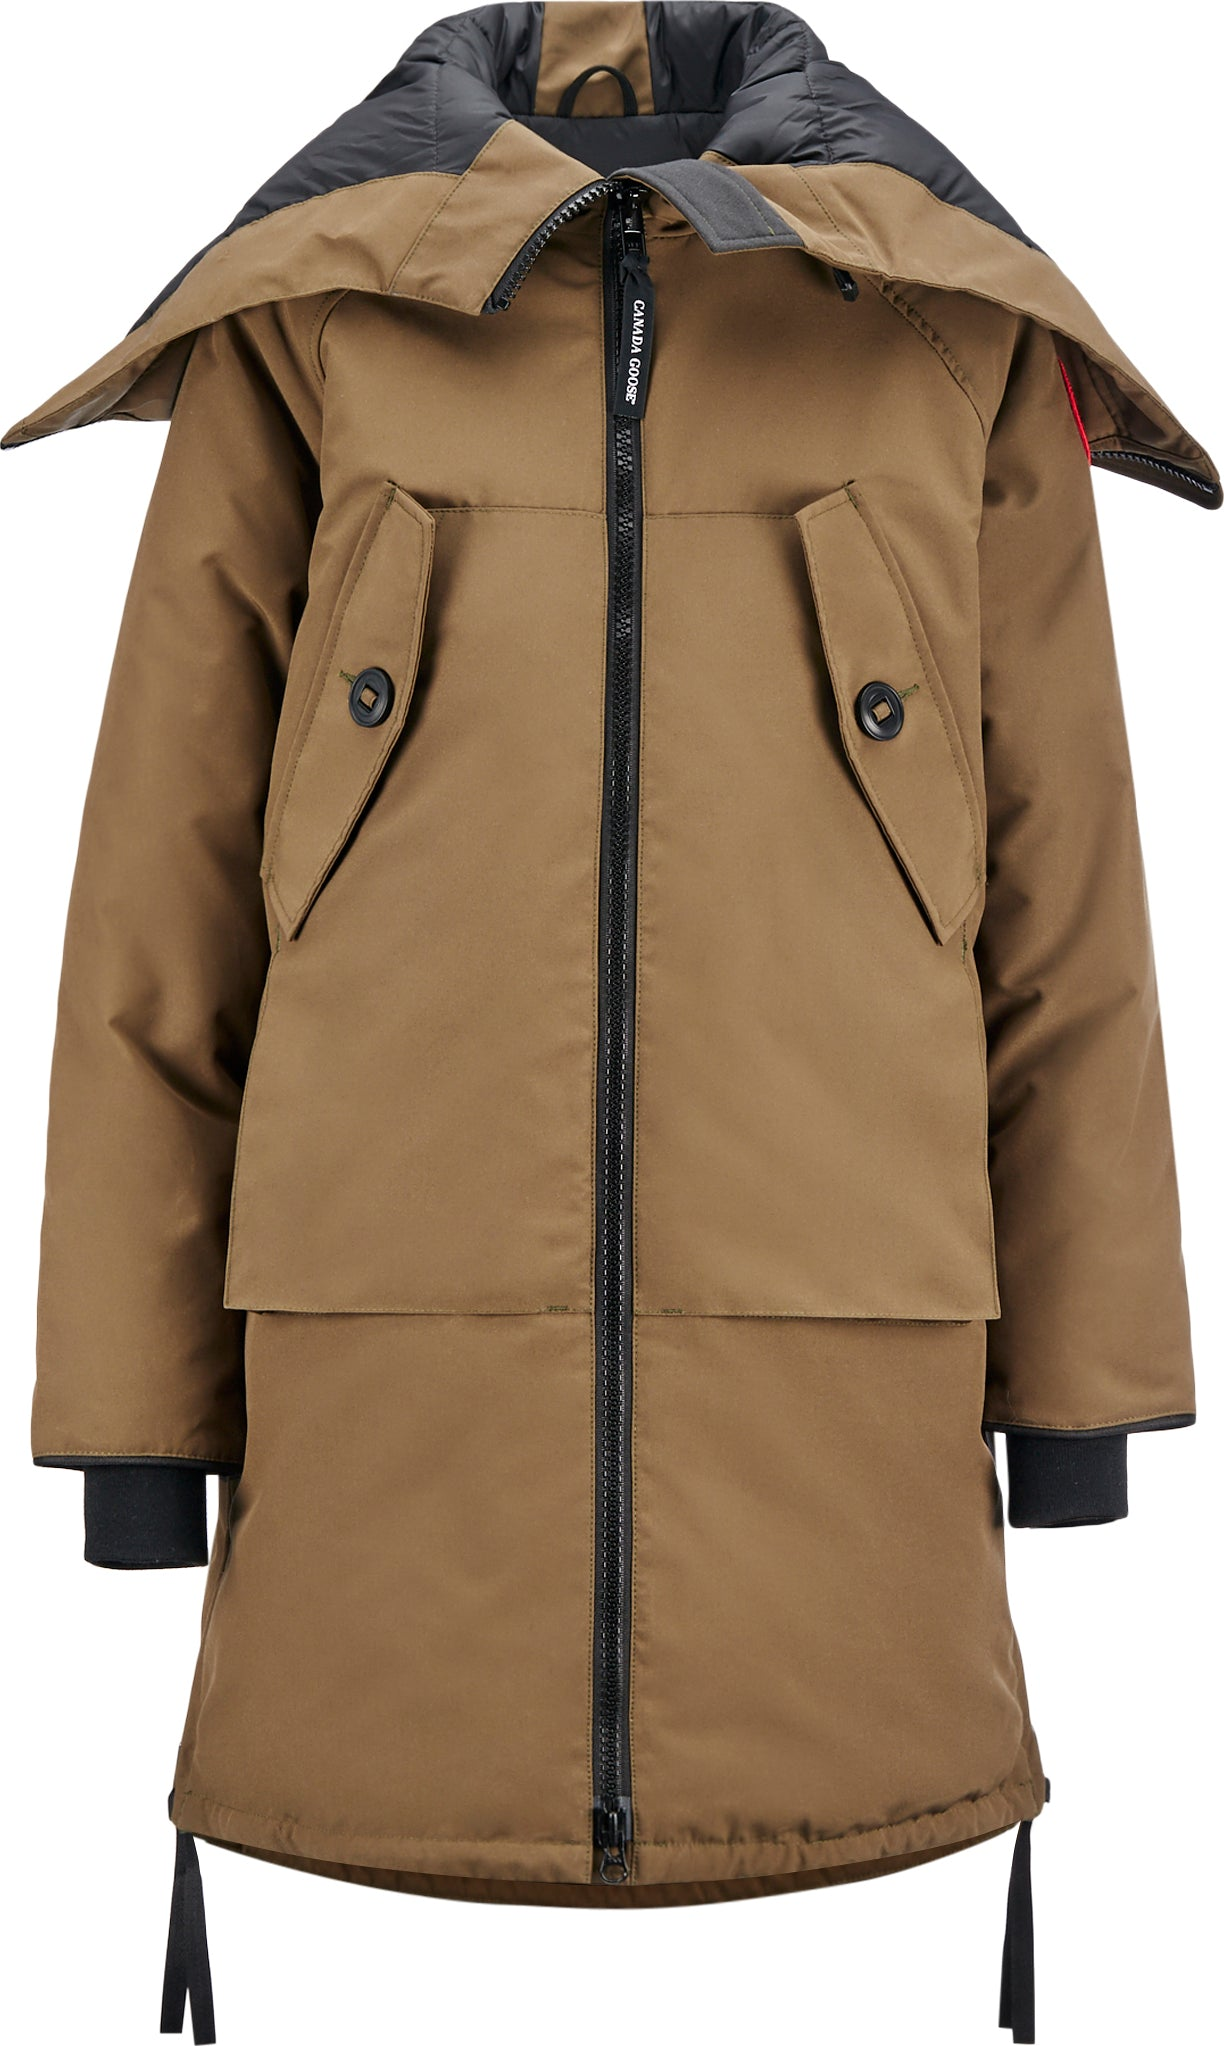 339fd400fd11 Canada Goose Olympia Parka - Women's | Altitude Sports